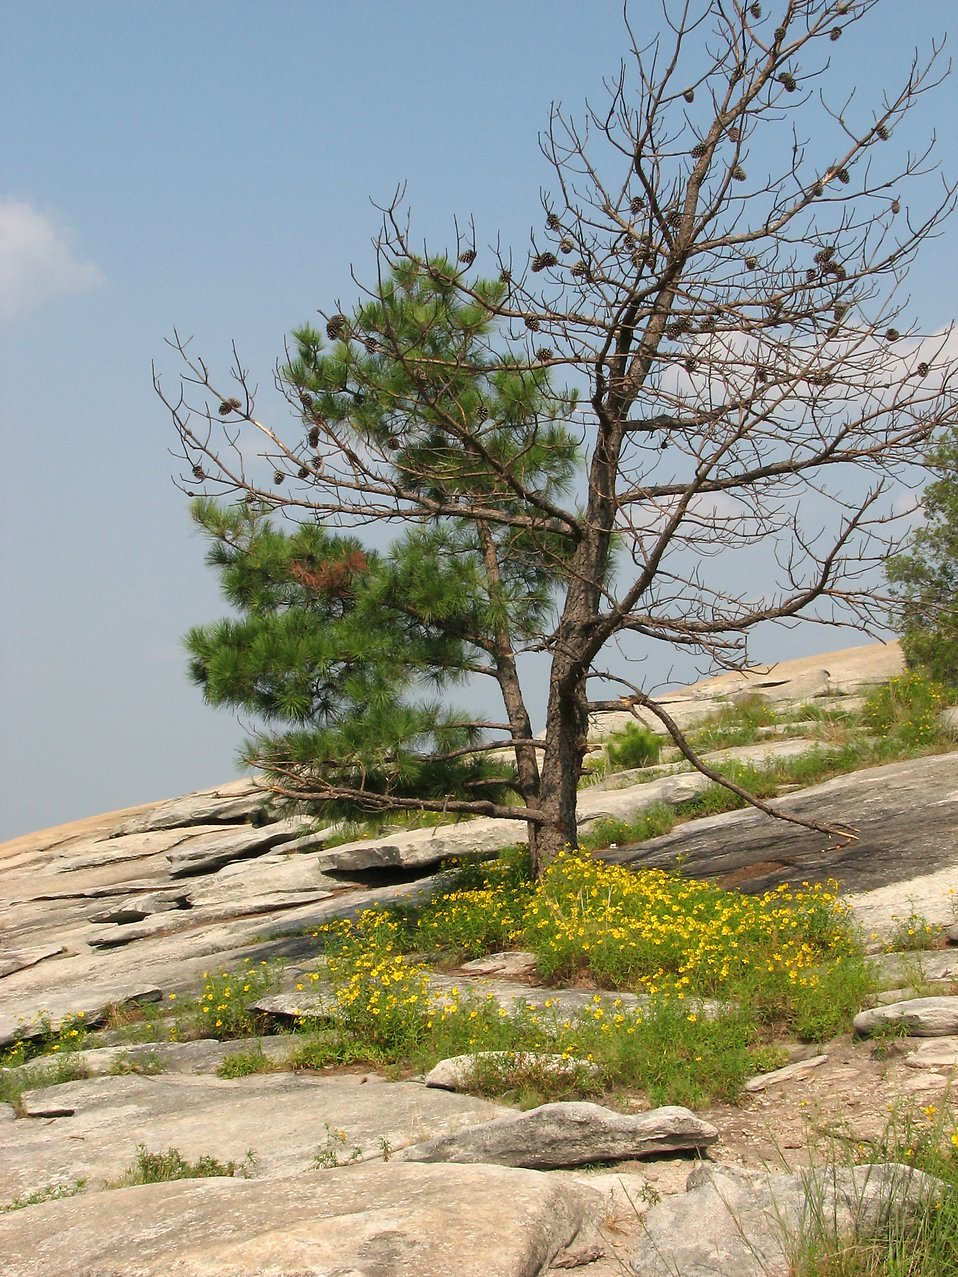 Stone Mountain On Top of the Trees